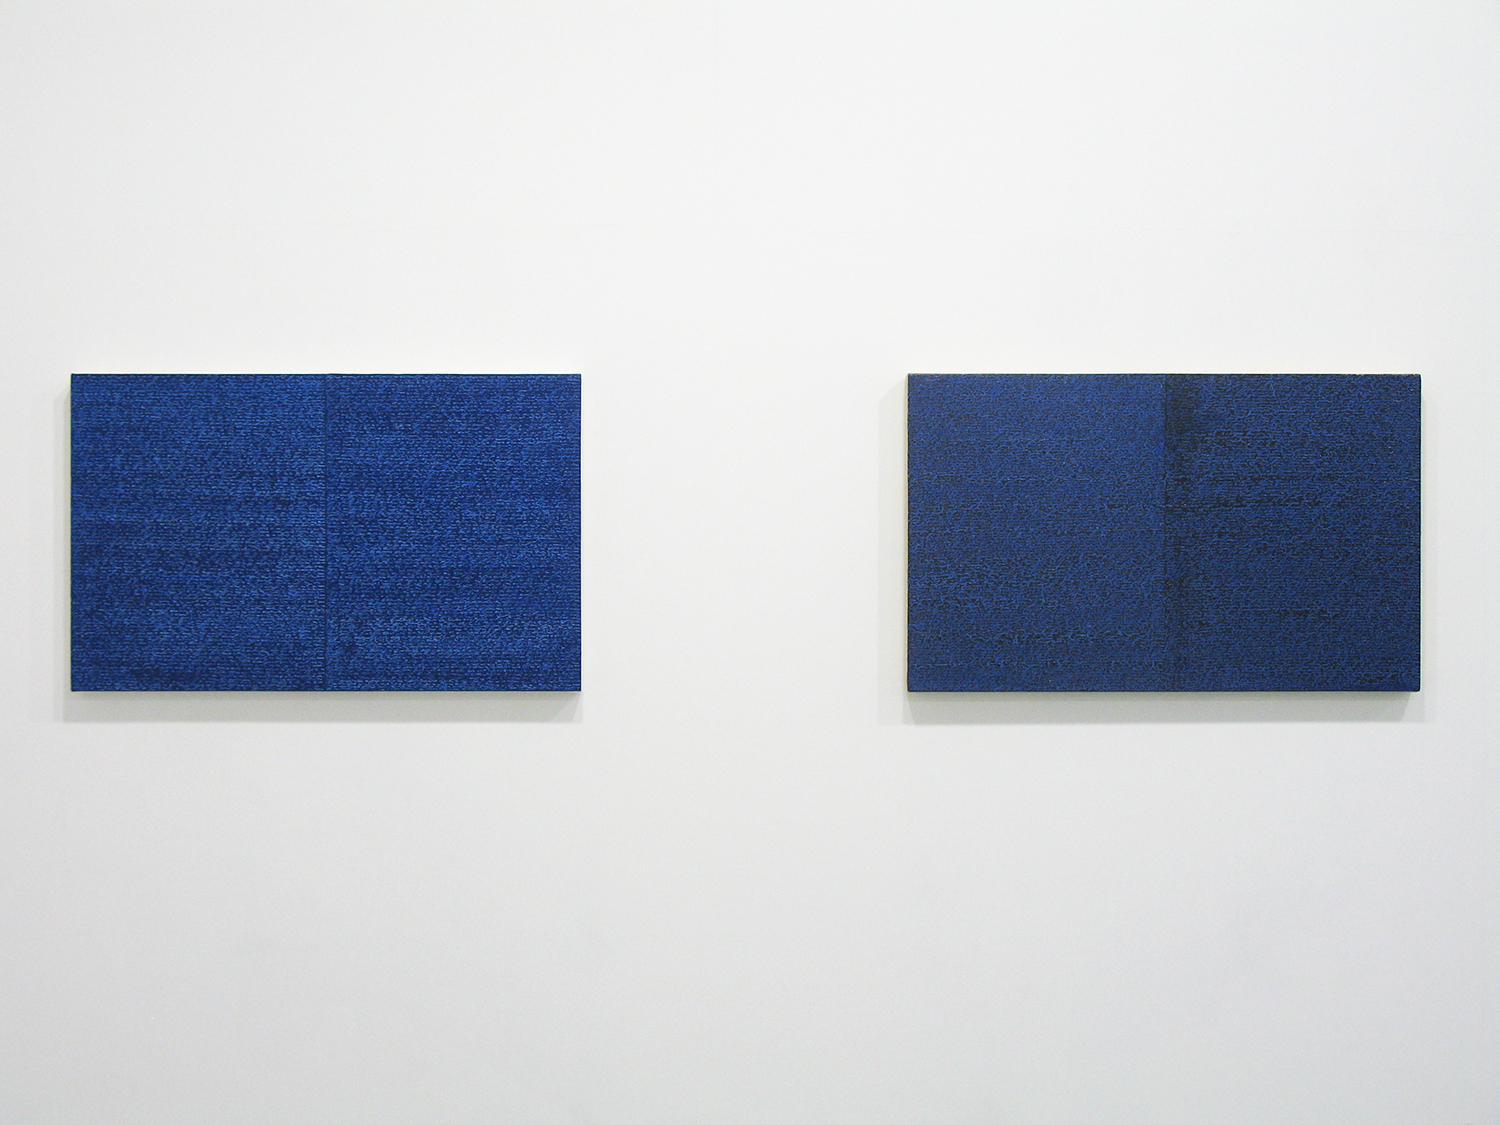 サイモン・フィッツジェラルド Simon Fitzgerald<br>Open Book blue-blue (left) Open Book blue-blue dark (right)<br>Oil, Amber on canvas over panel 37 x 60 cm<br>2008 each